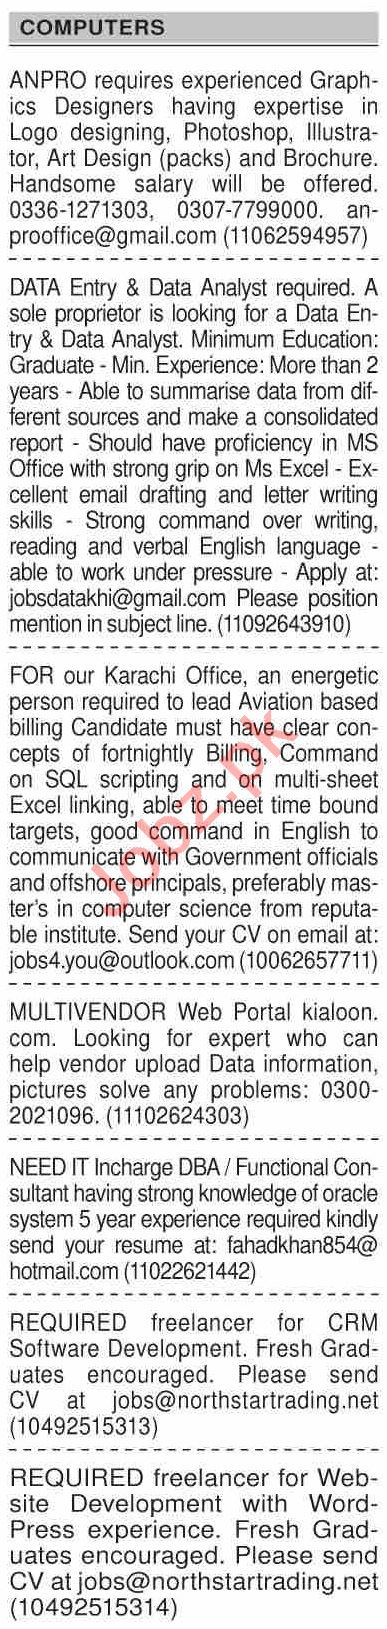 Dawn Sunday Classified Ads 6 Dec 2020 for Computer Staff